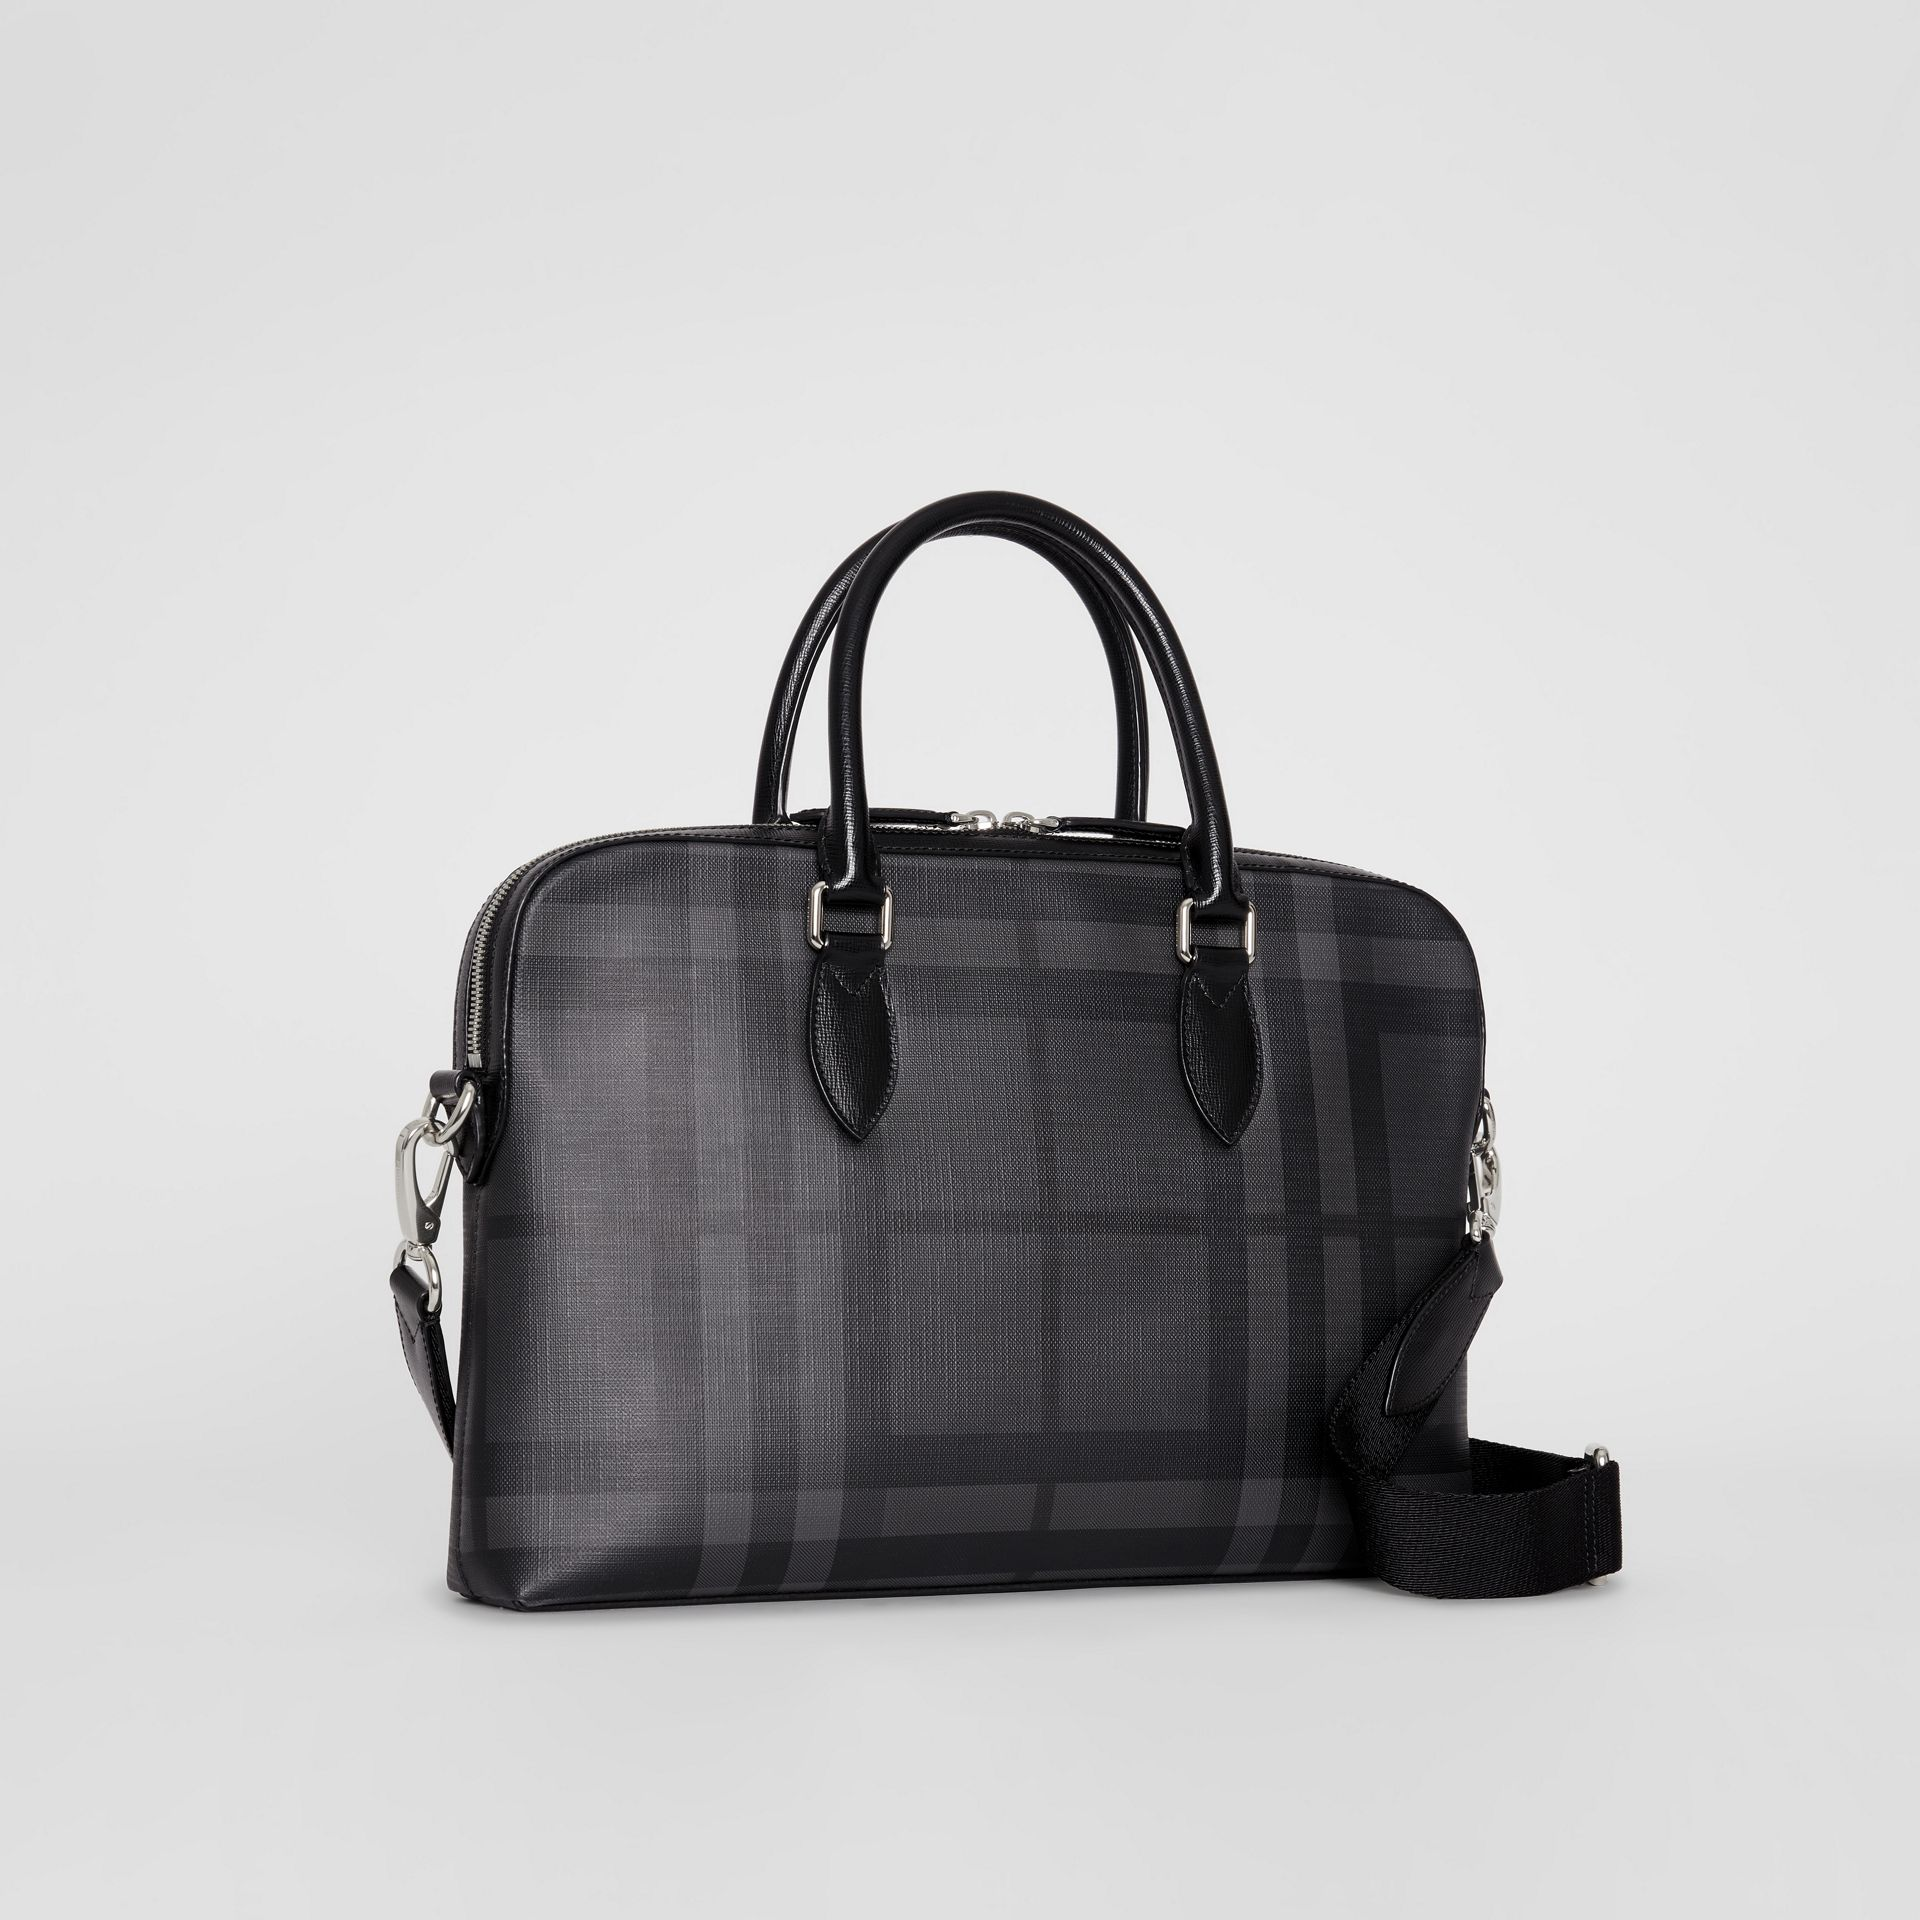 Attaché-case medium à motif London check avec éléments en cuir (Anthracite/noir) - Homme | Burberry Canada - photo de la galerie 6